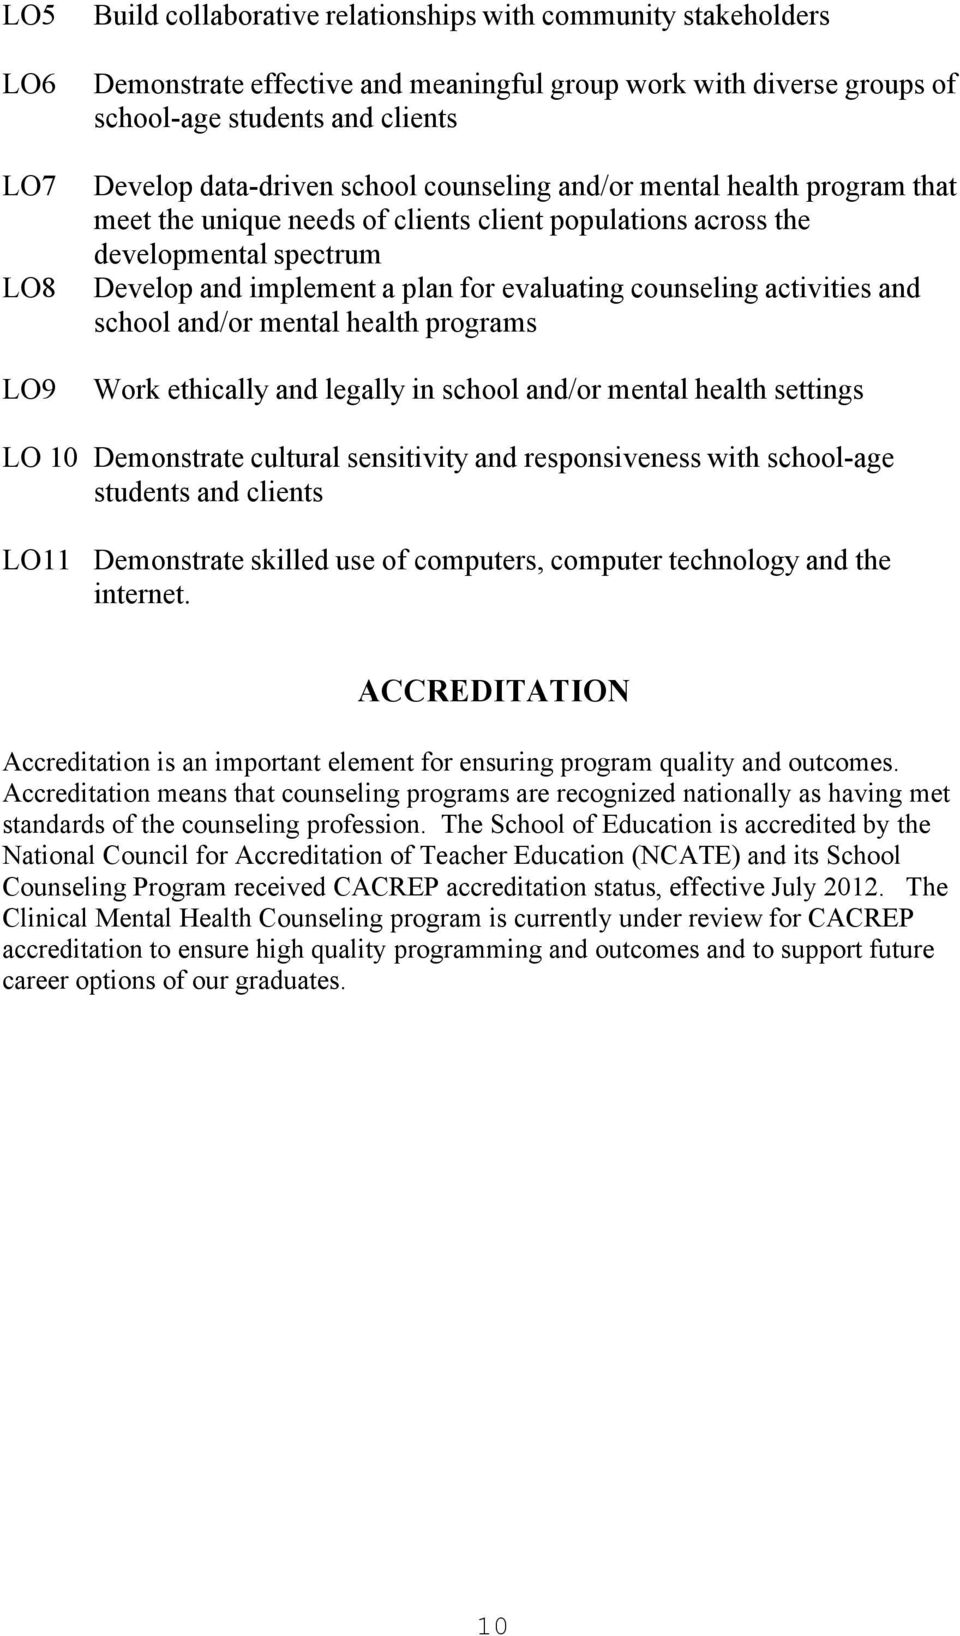 counseling activities and school and/or mental health programs Work ethically and legally in school and/or mental health settings LO 10 Demonstrate cultural sensitivity and responsiveness with